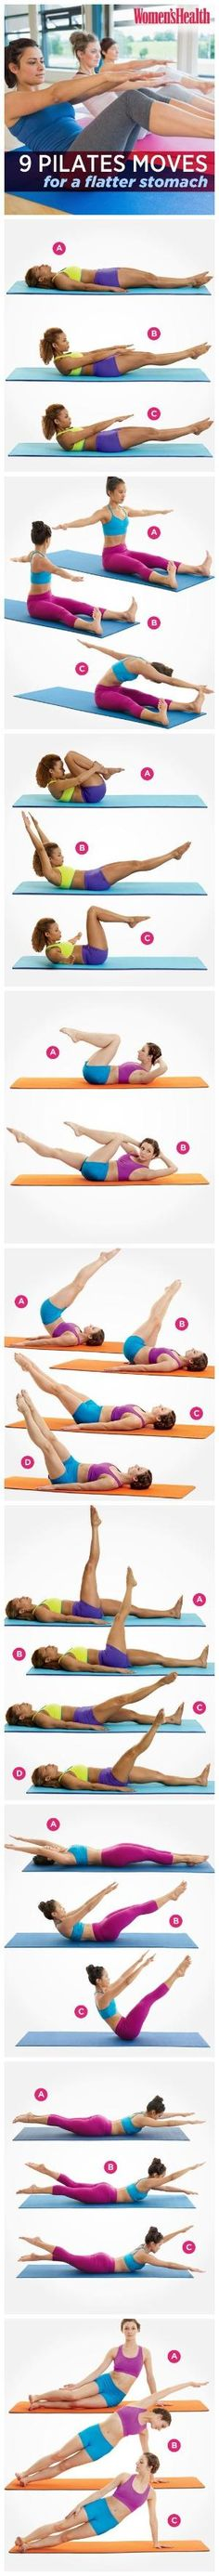 9 Pilates Moves For A Flatter Stomach by sydneecarlile